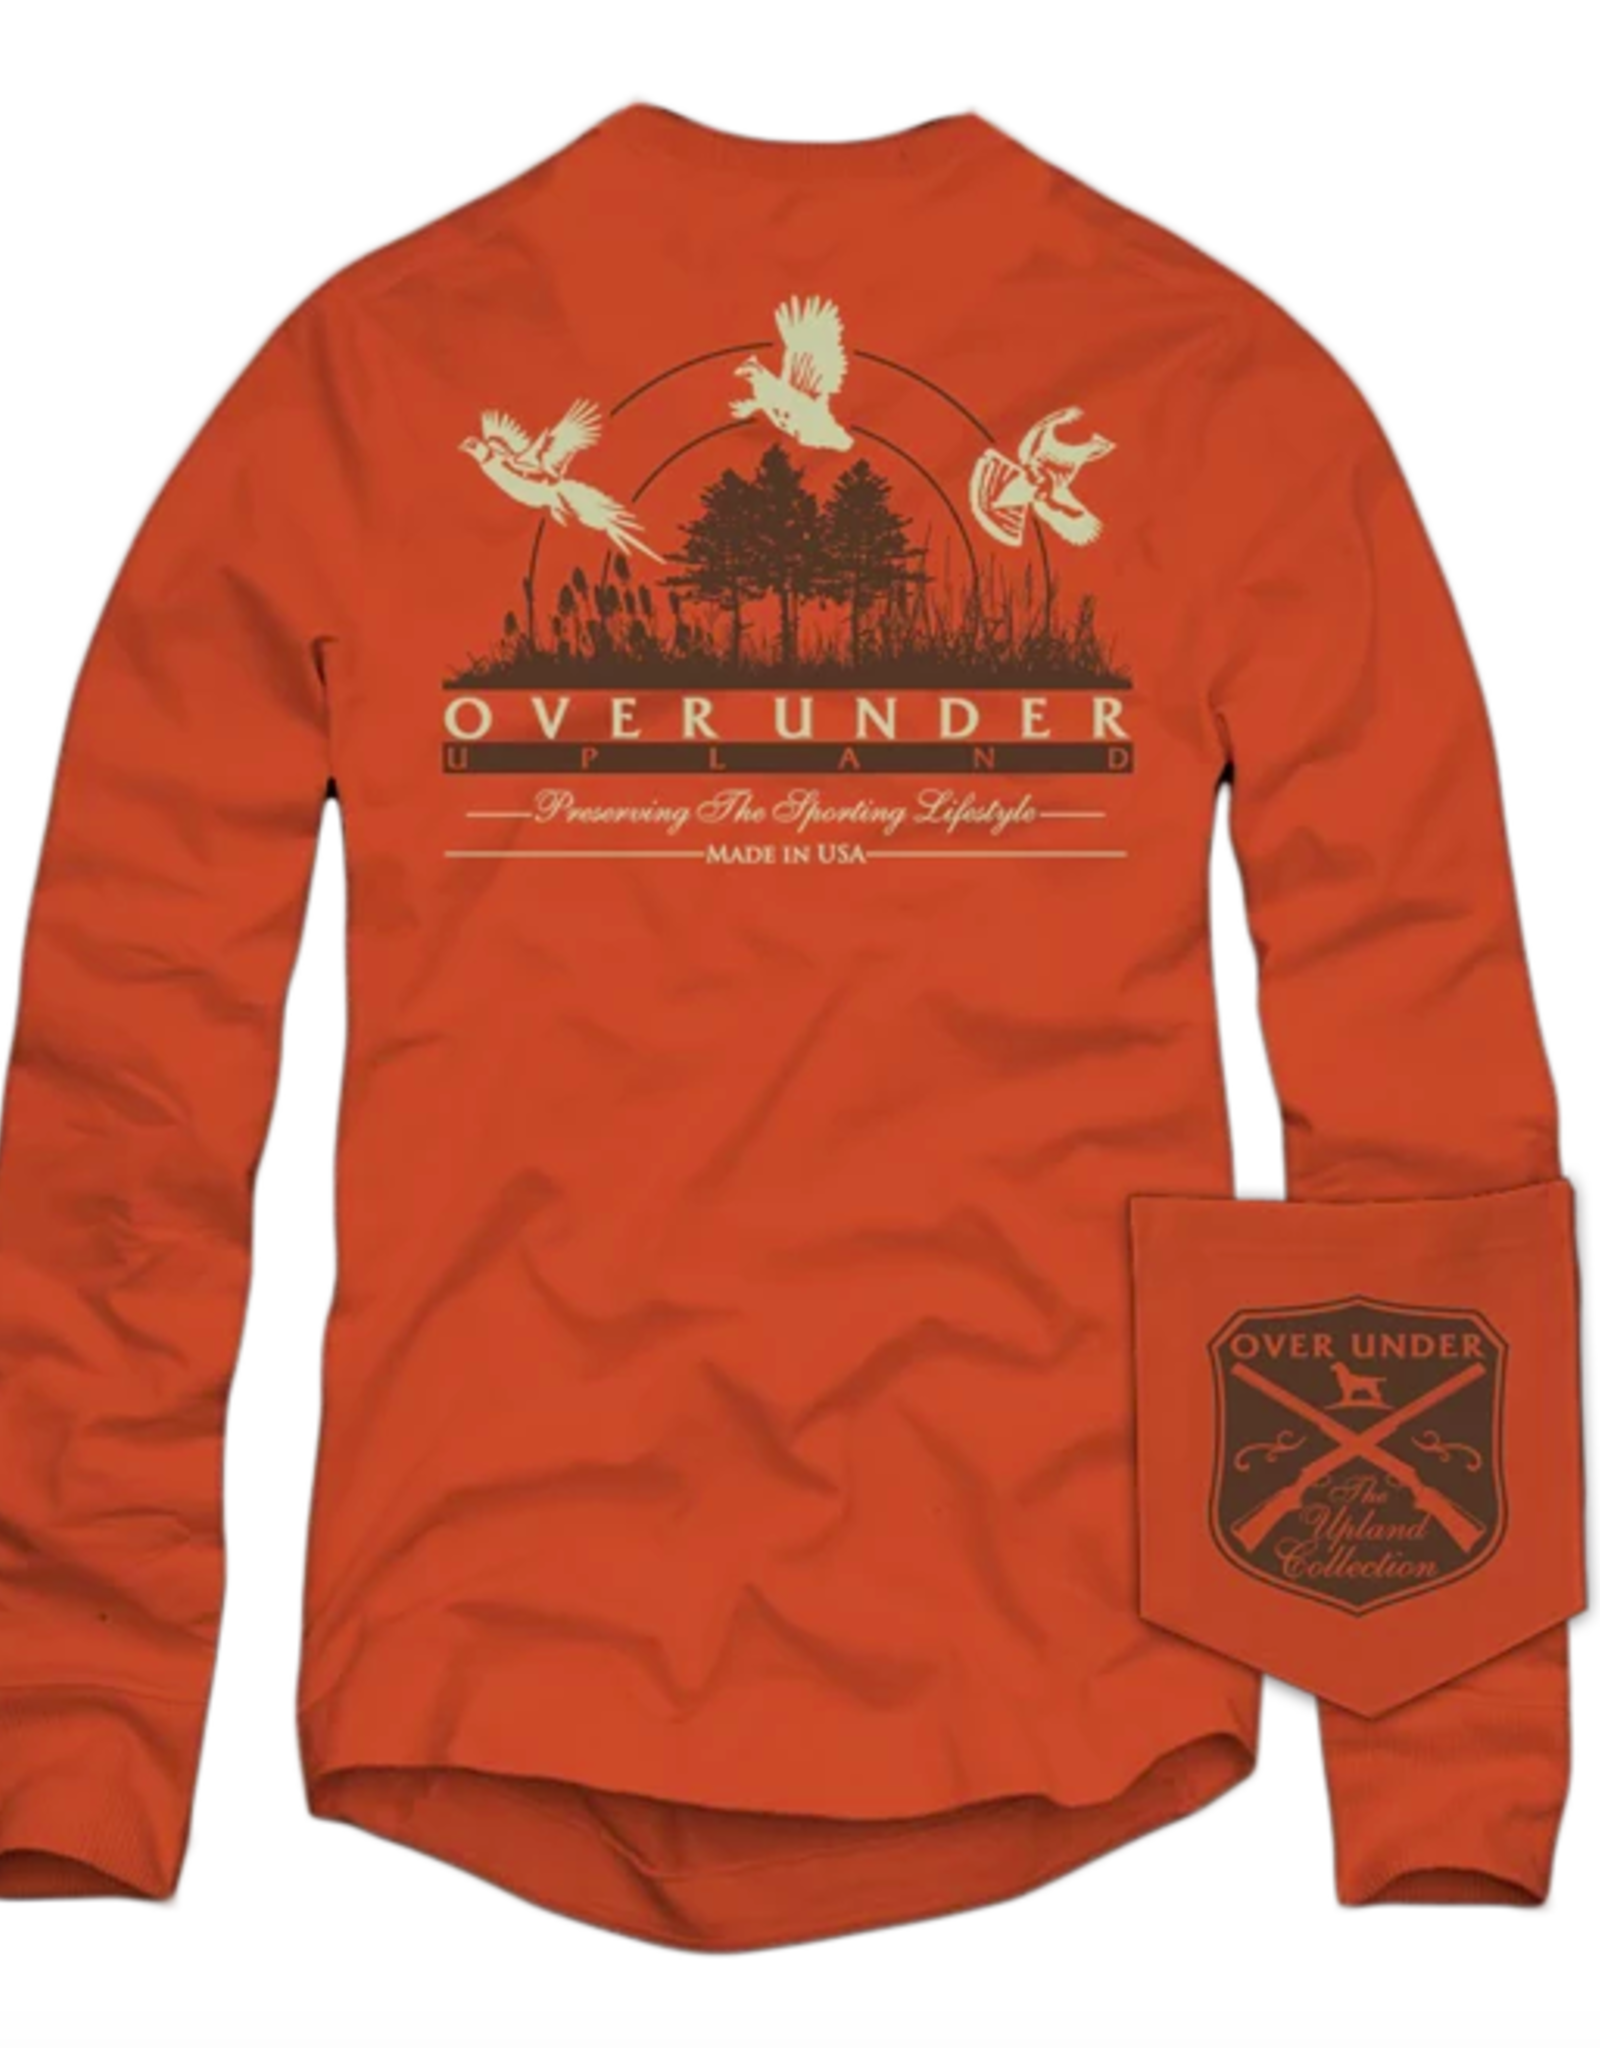 Over Under L/S Upland Collection T-Shirt